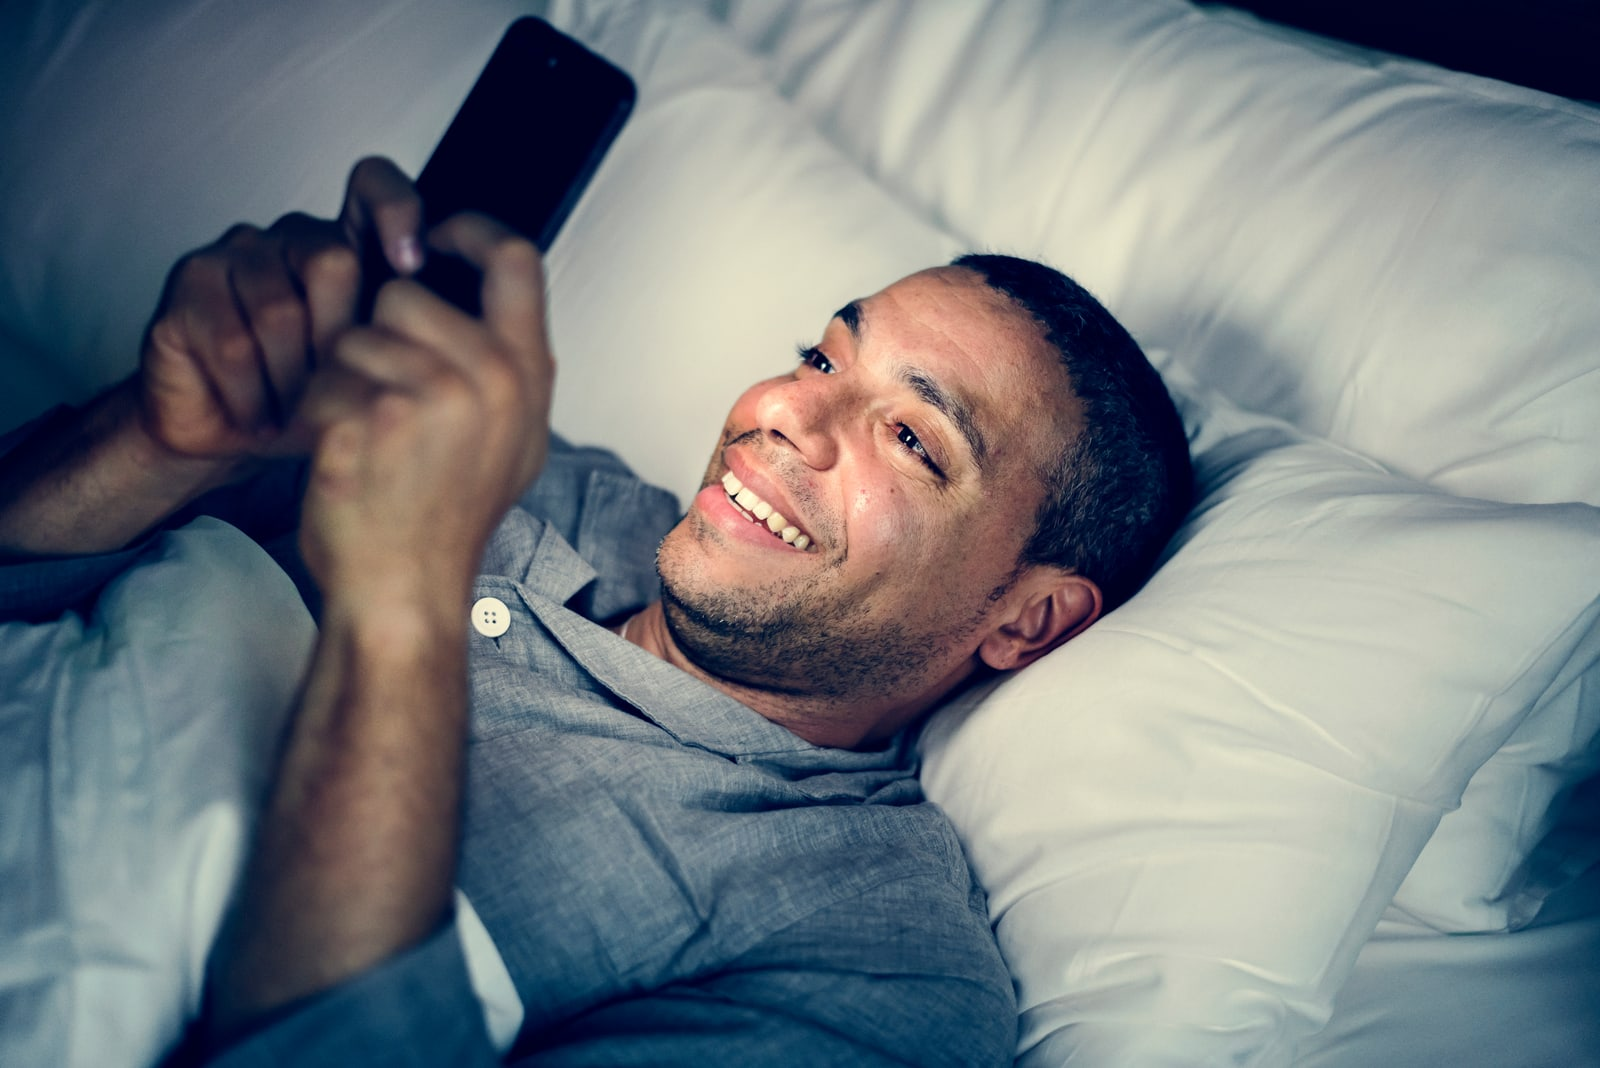 a happy man is lying in bed and using a smartphone